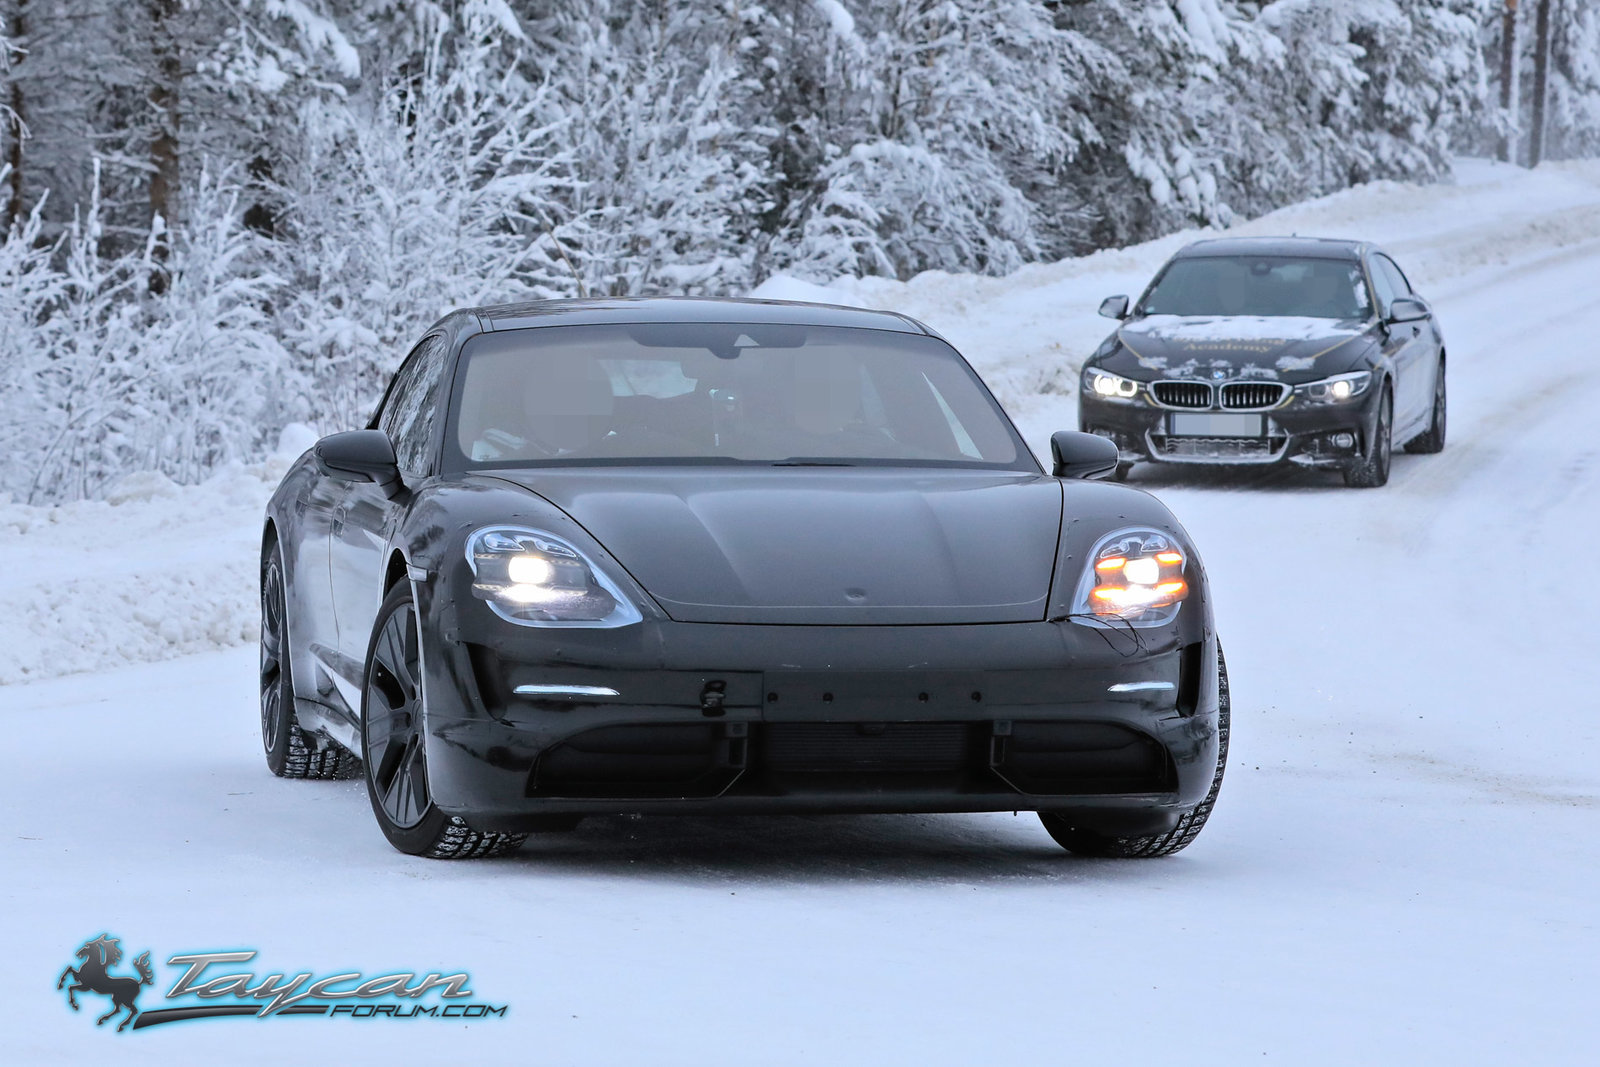 Porsche-Taycan-Prototype-winter-2